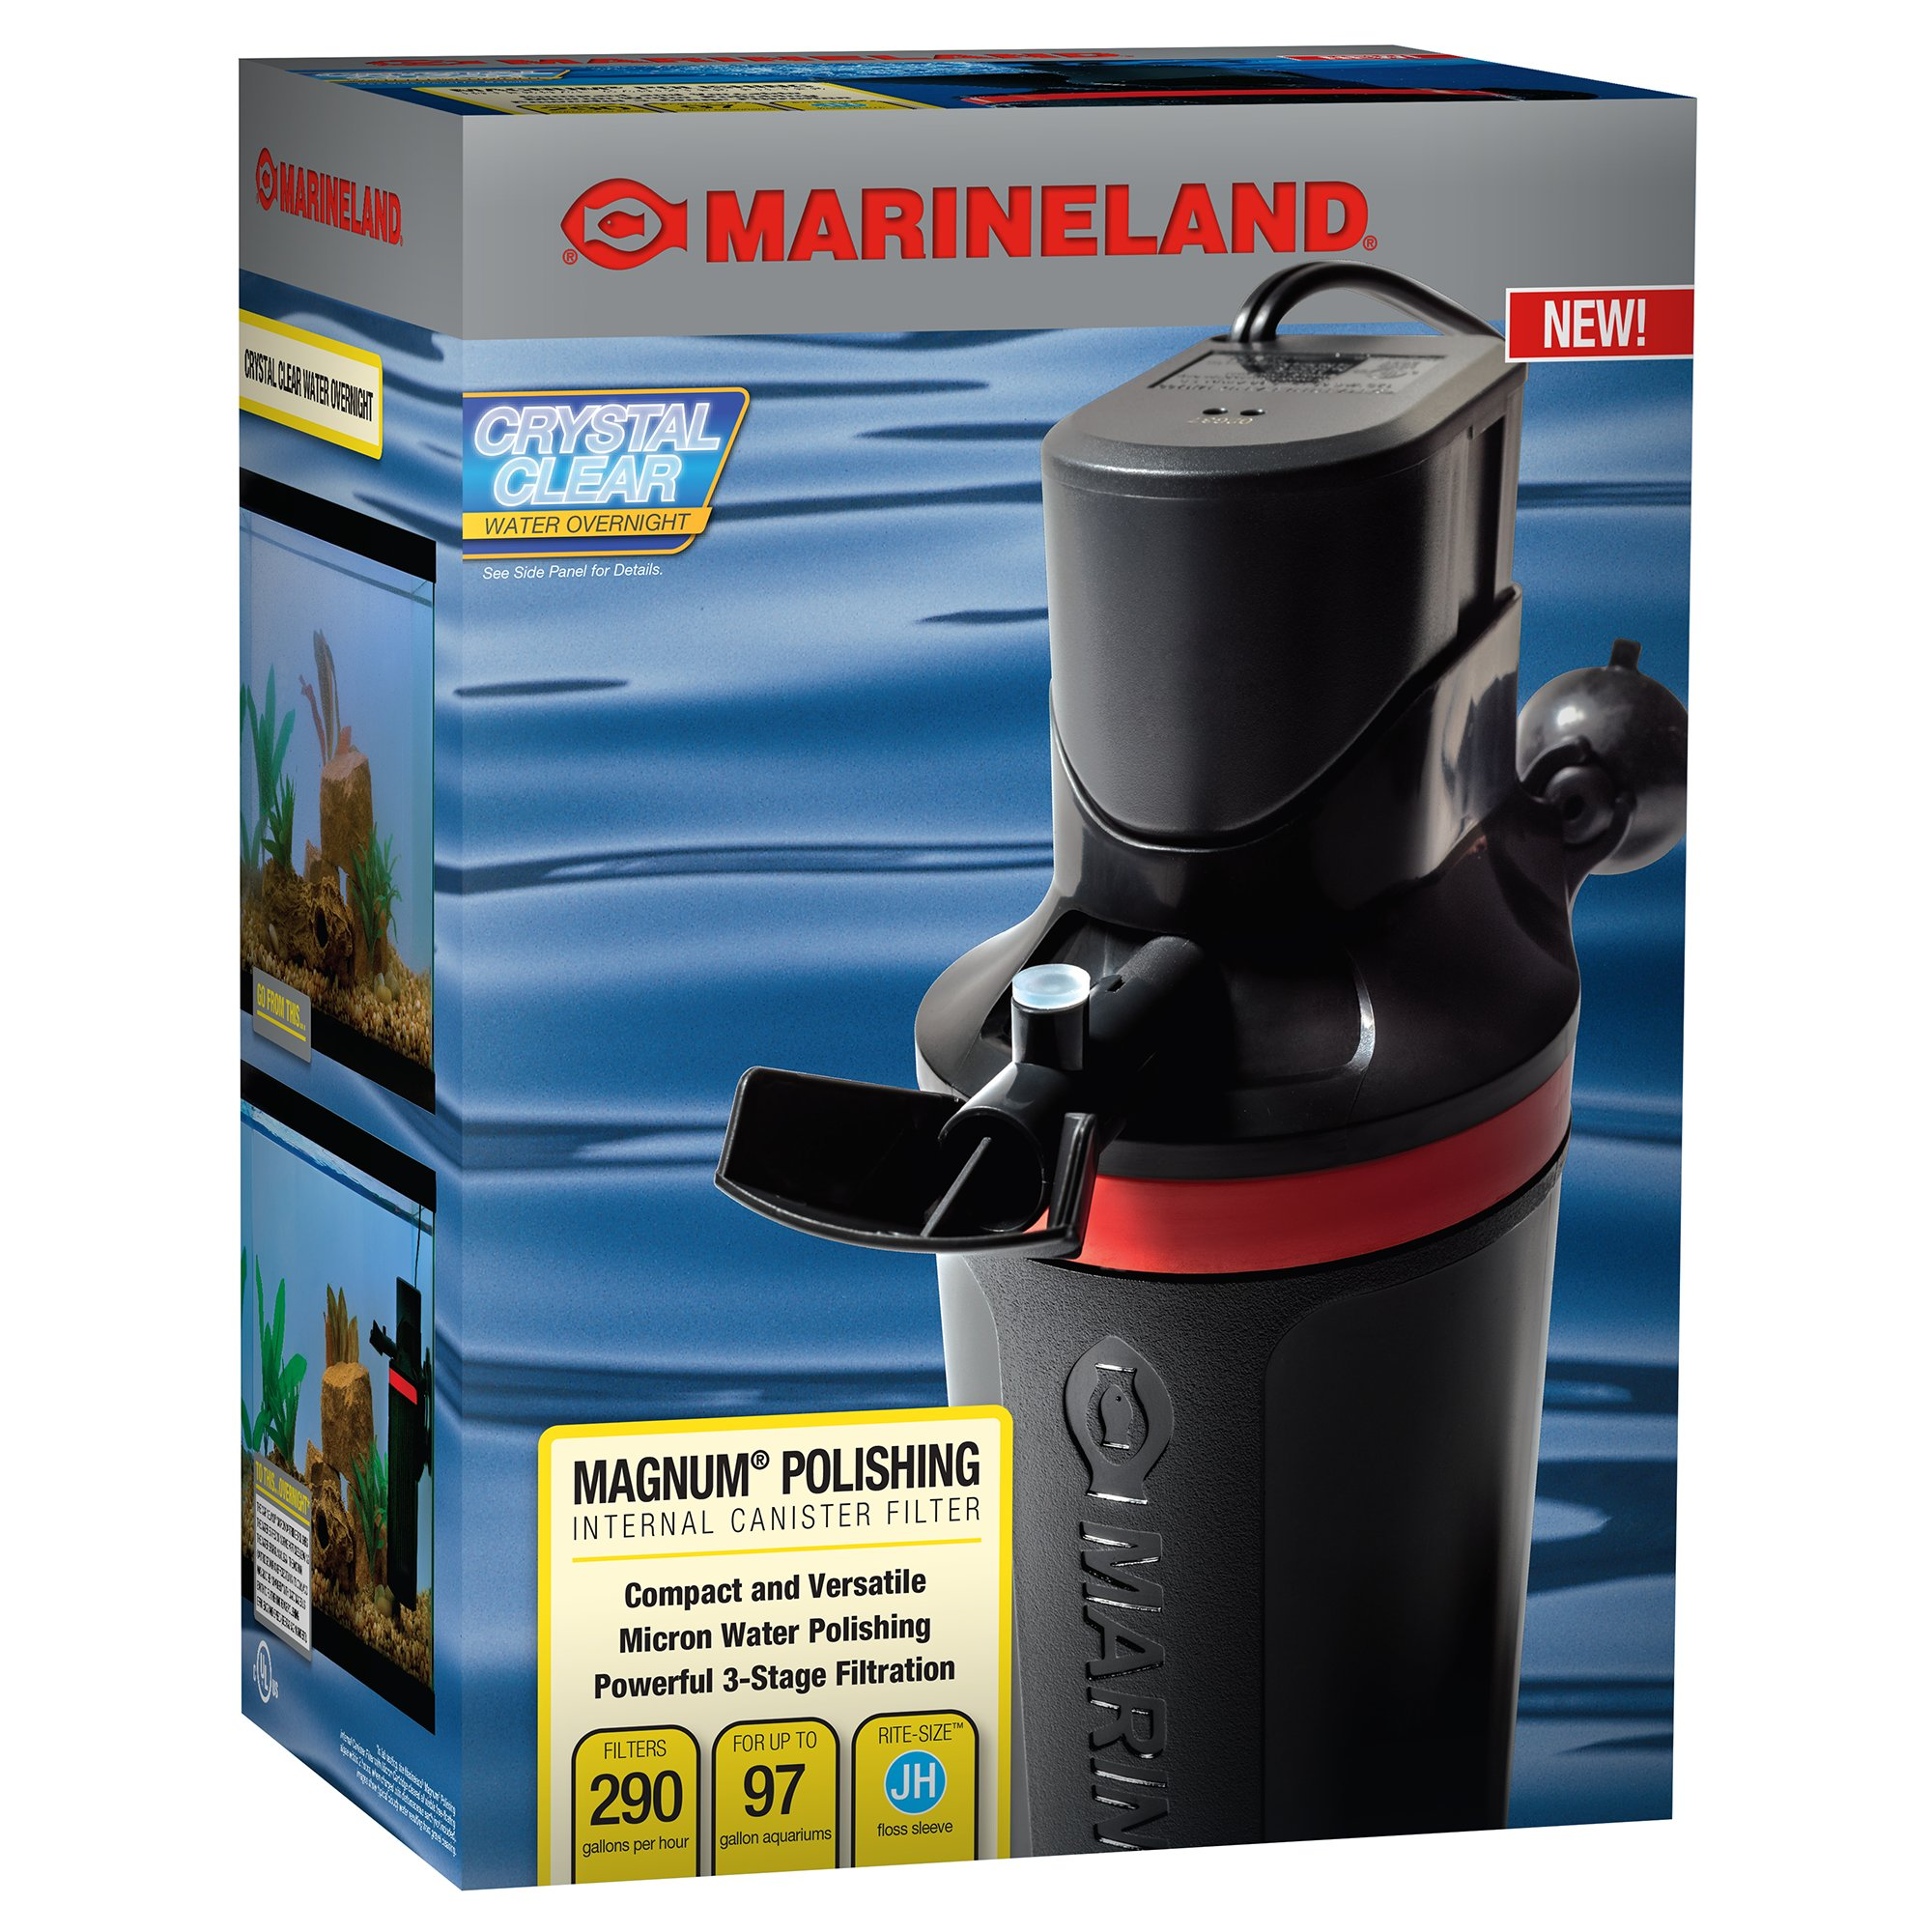 Marineland magnum polishing internal canister filter petco for Petco fish filters